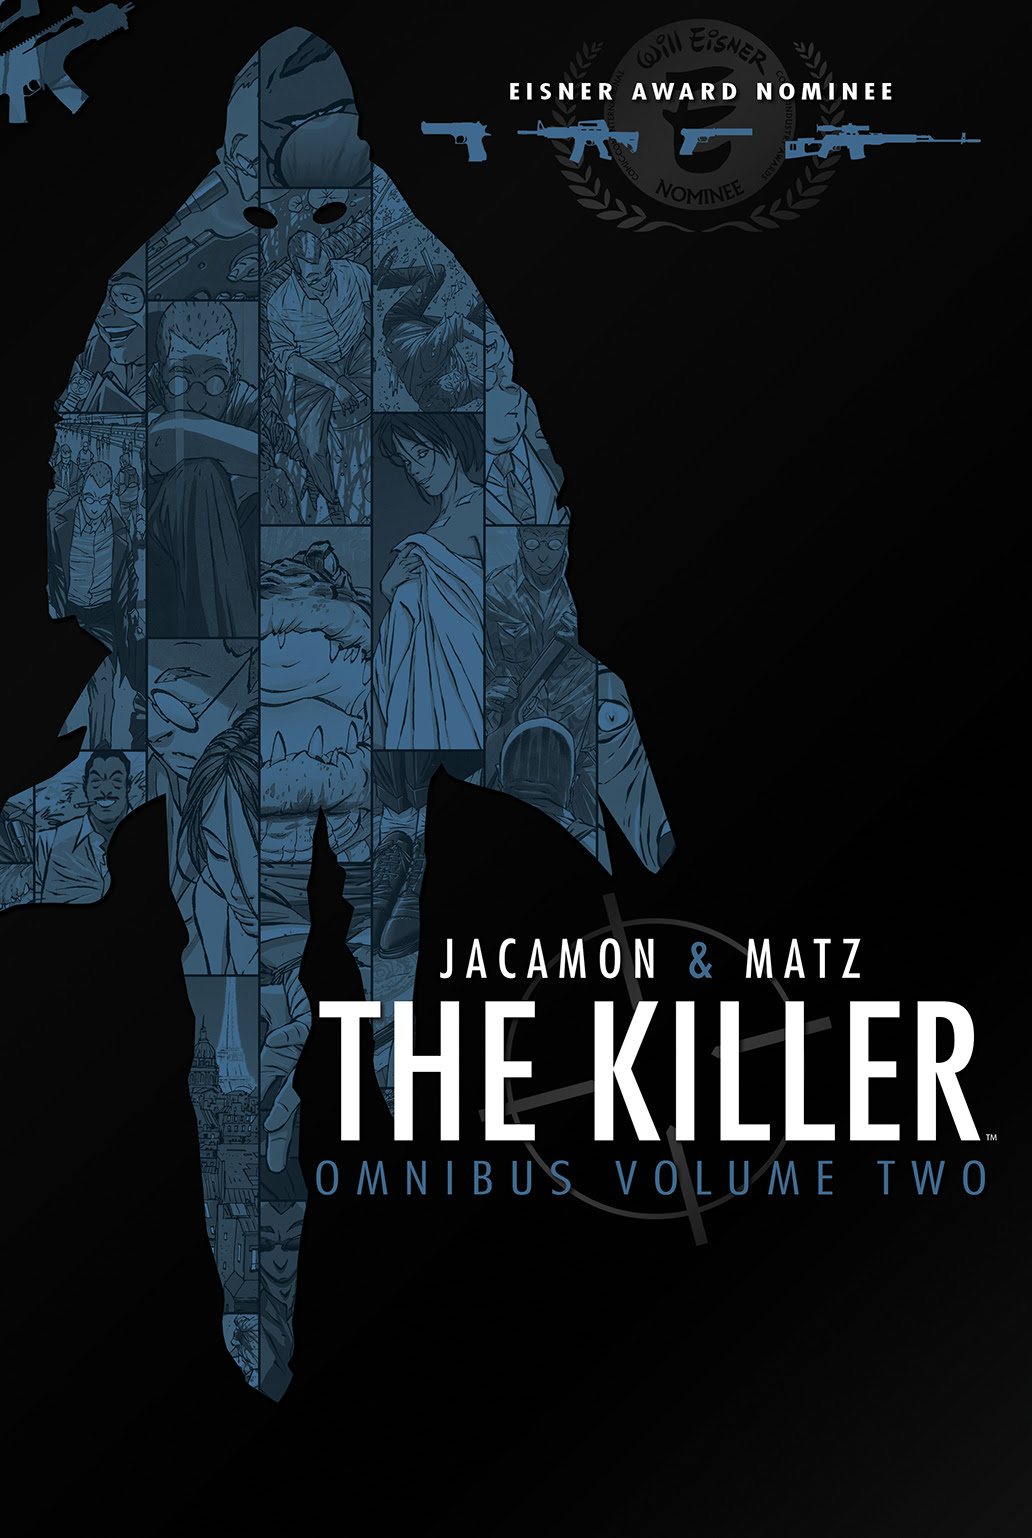 THE KILLER OMNIBUS VOL. 2 TP Cover by Luc Jacamon